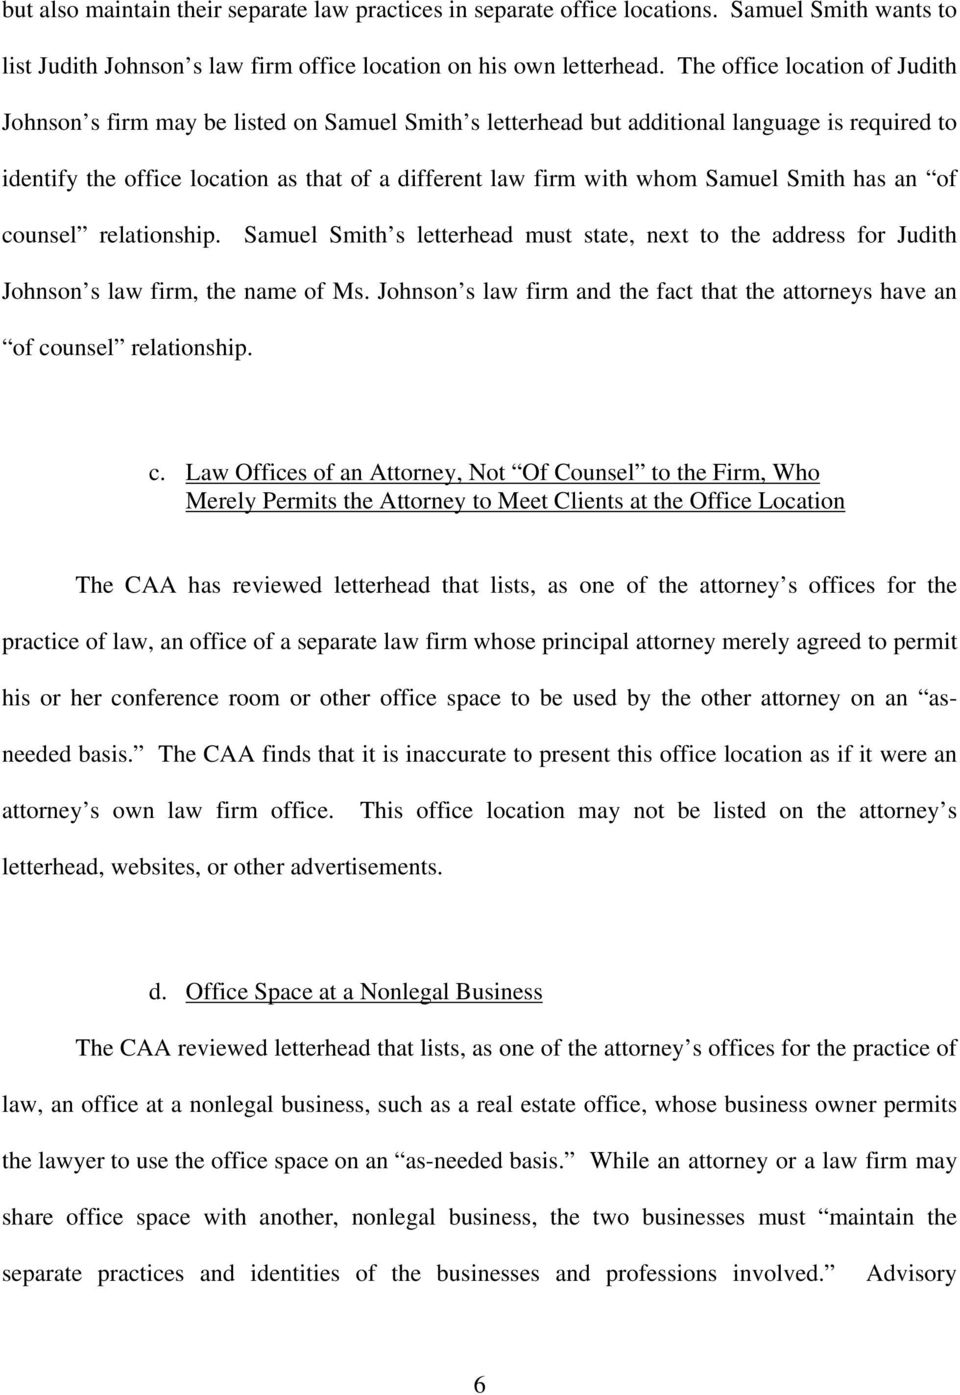 Samuel Smith has an of counsel relationship. Samuel Smith s letterhead must state, next to the address for Judith Johnson s law firm, the name of Ms.